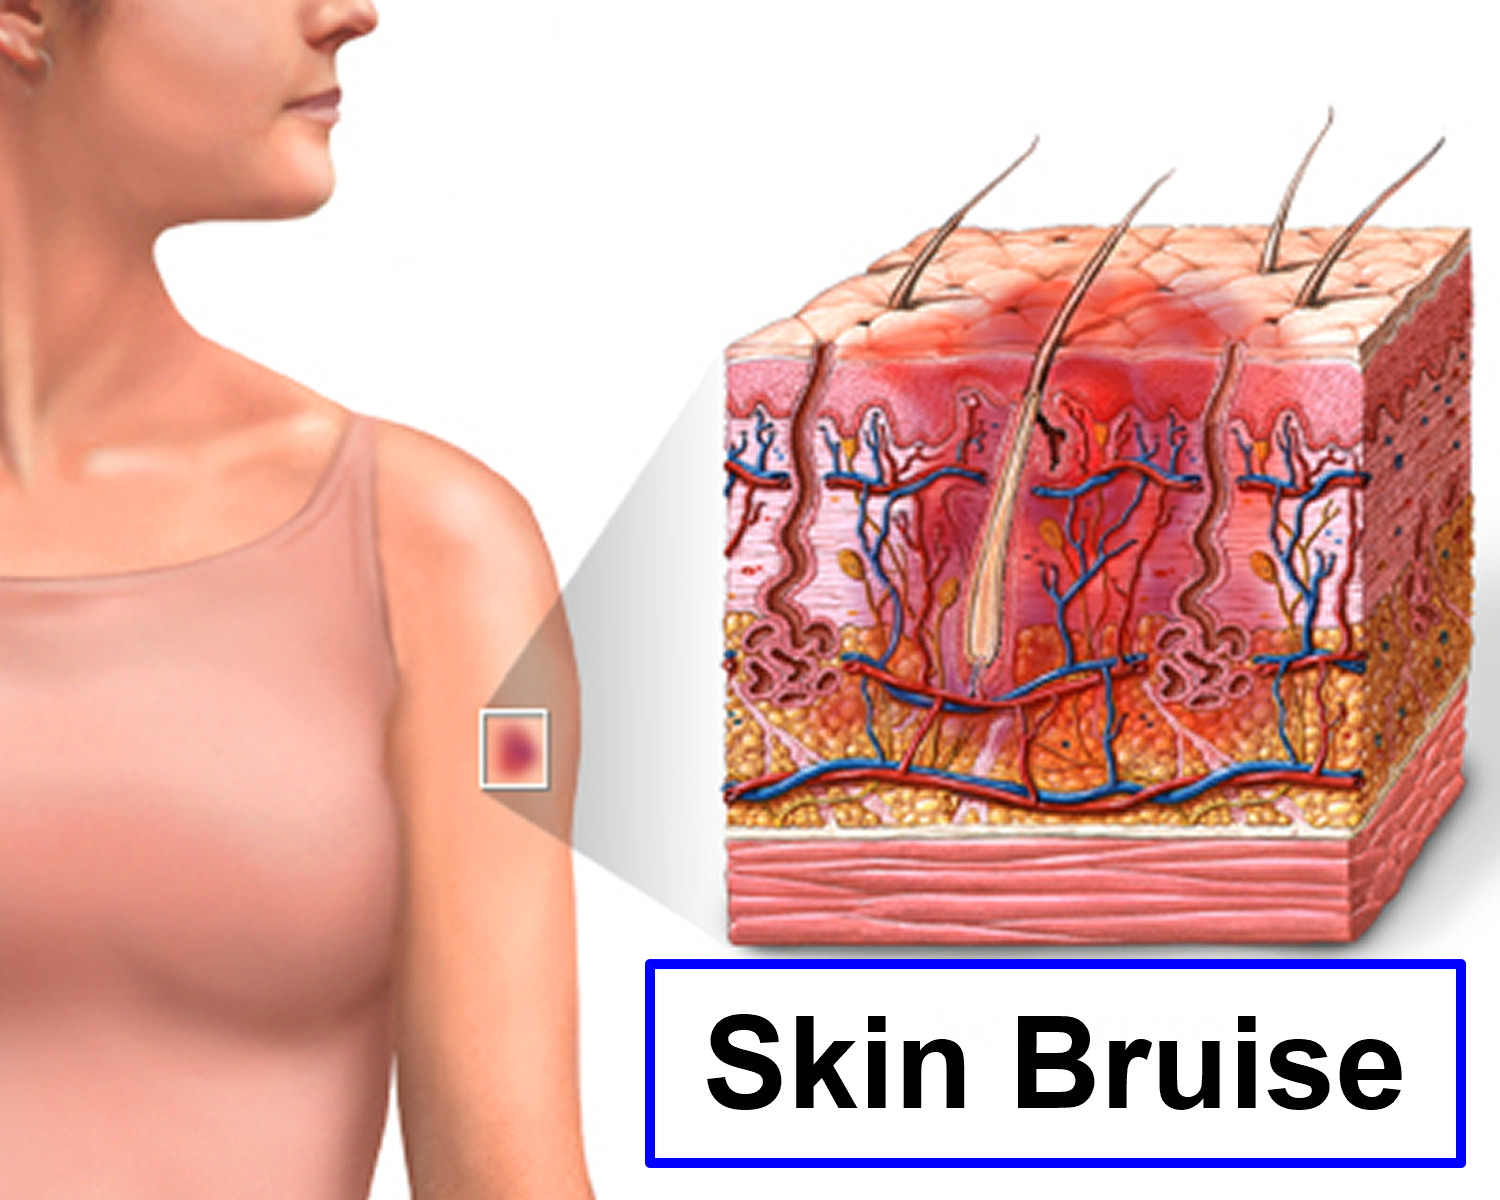 Bruise Causes Diagnosis Treatment Home Remedy And Healing Time